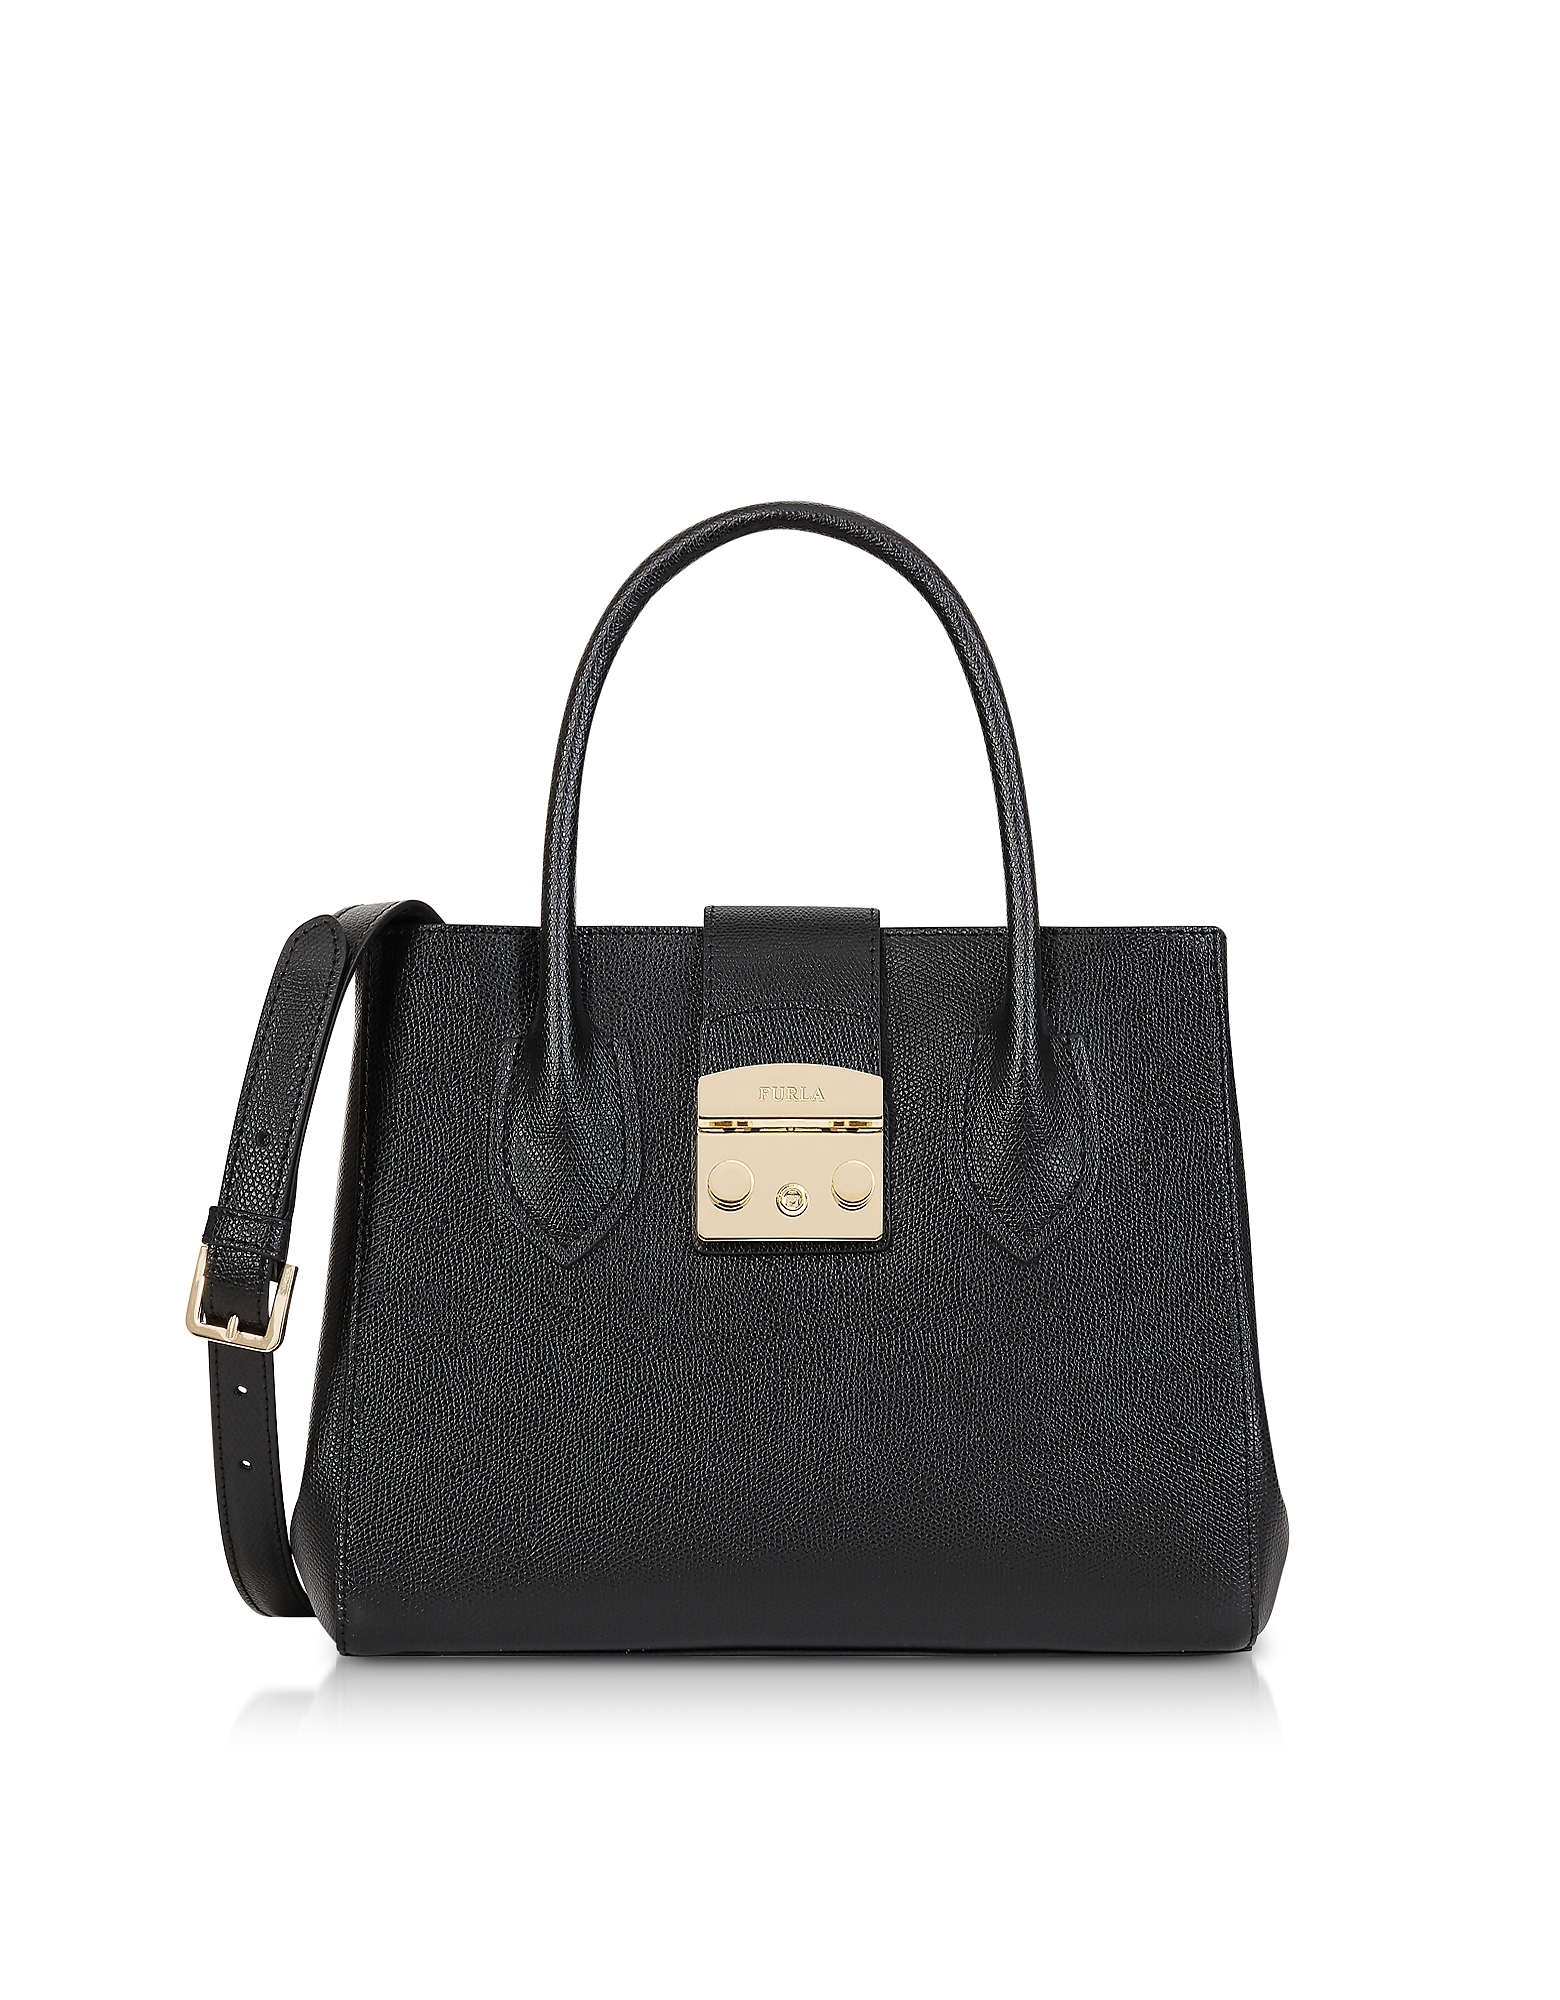 Furla Handbags, Onyx Leather Metropolis Small Tote Bag